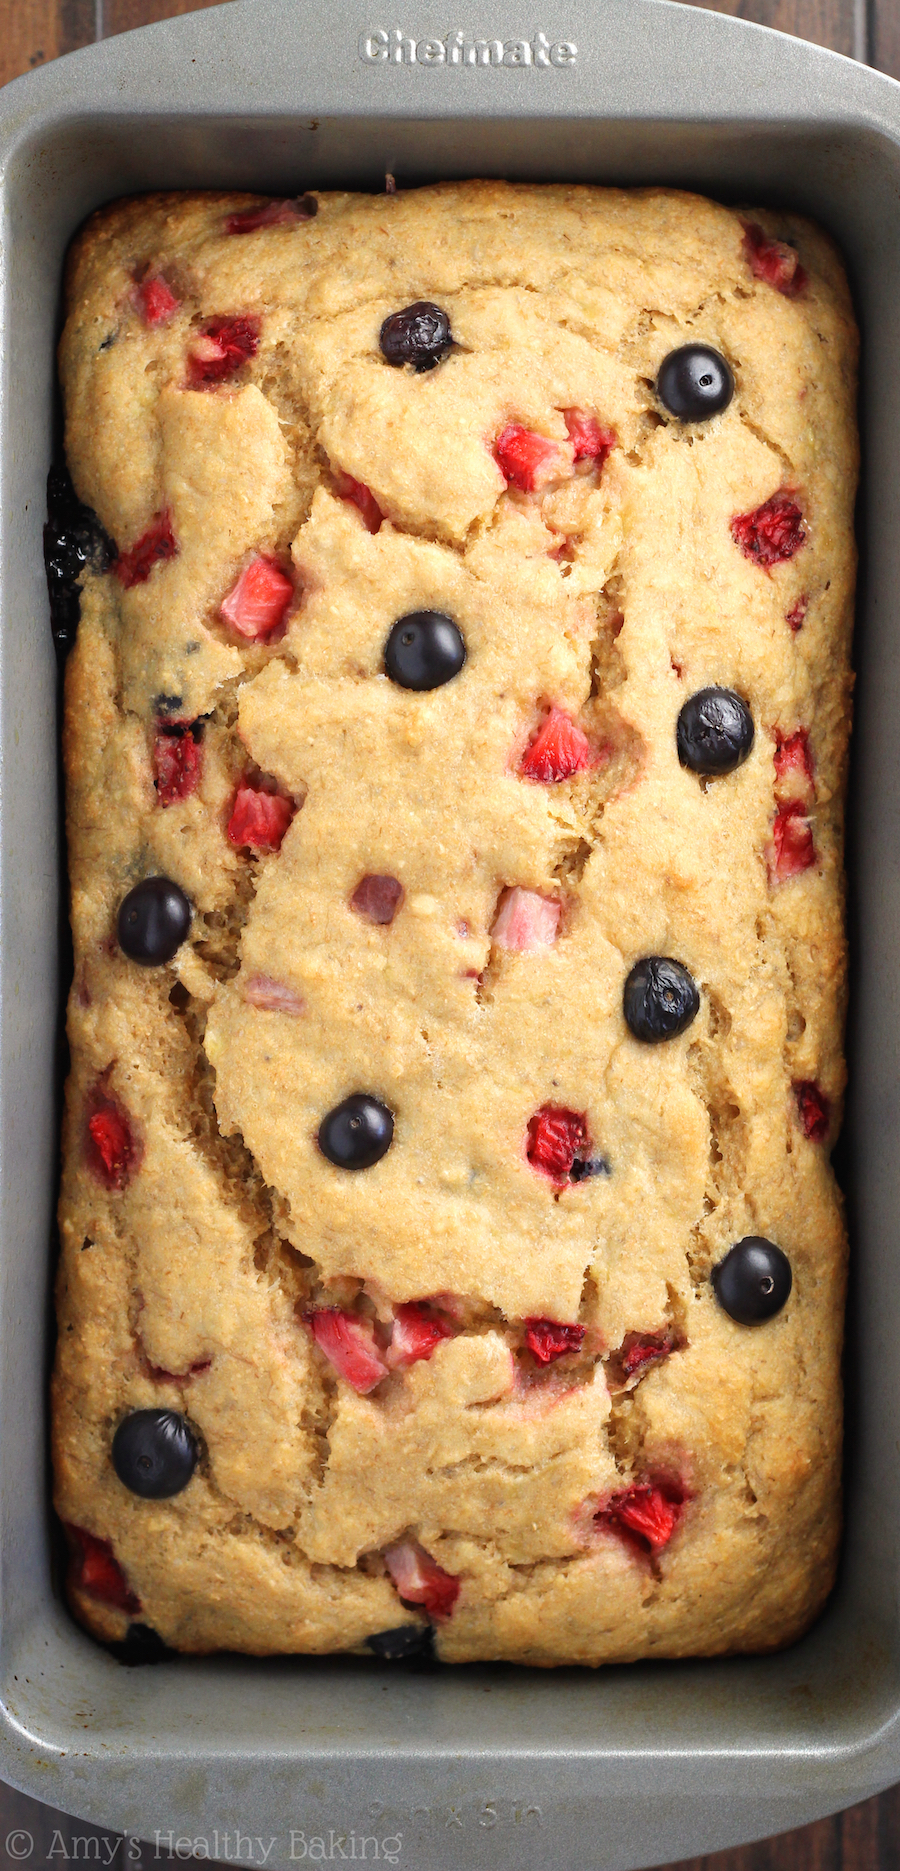 Whole wheat strawberry blueberry banana bread. Get more recipes for healthy 4th of July desserts at EatingRichly.com.